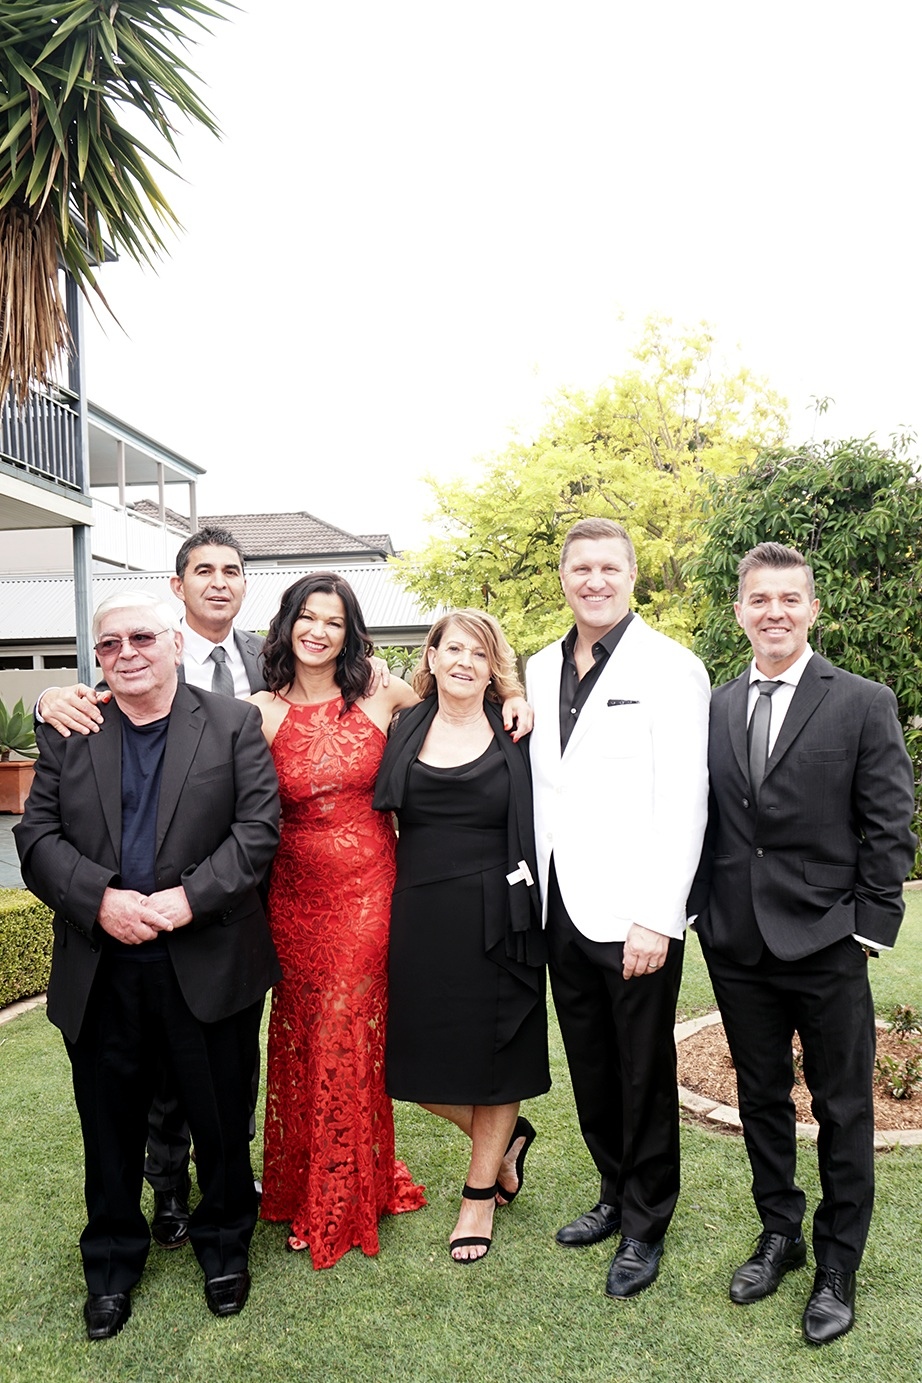 Marcella with mum, dad, brothers and husband Craig. Photo by Andrew Gito.